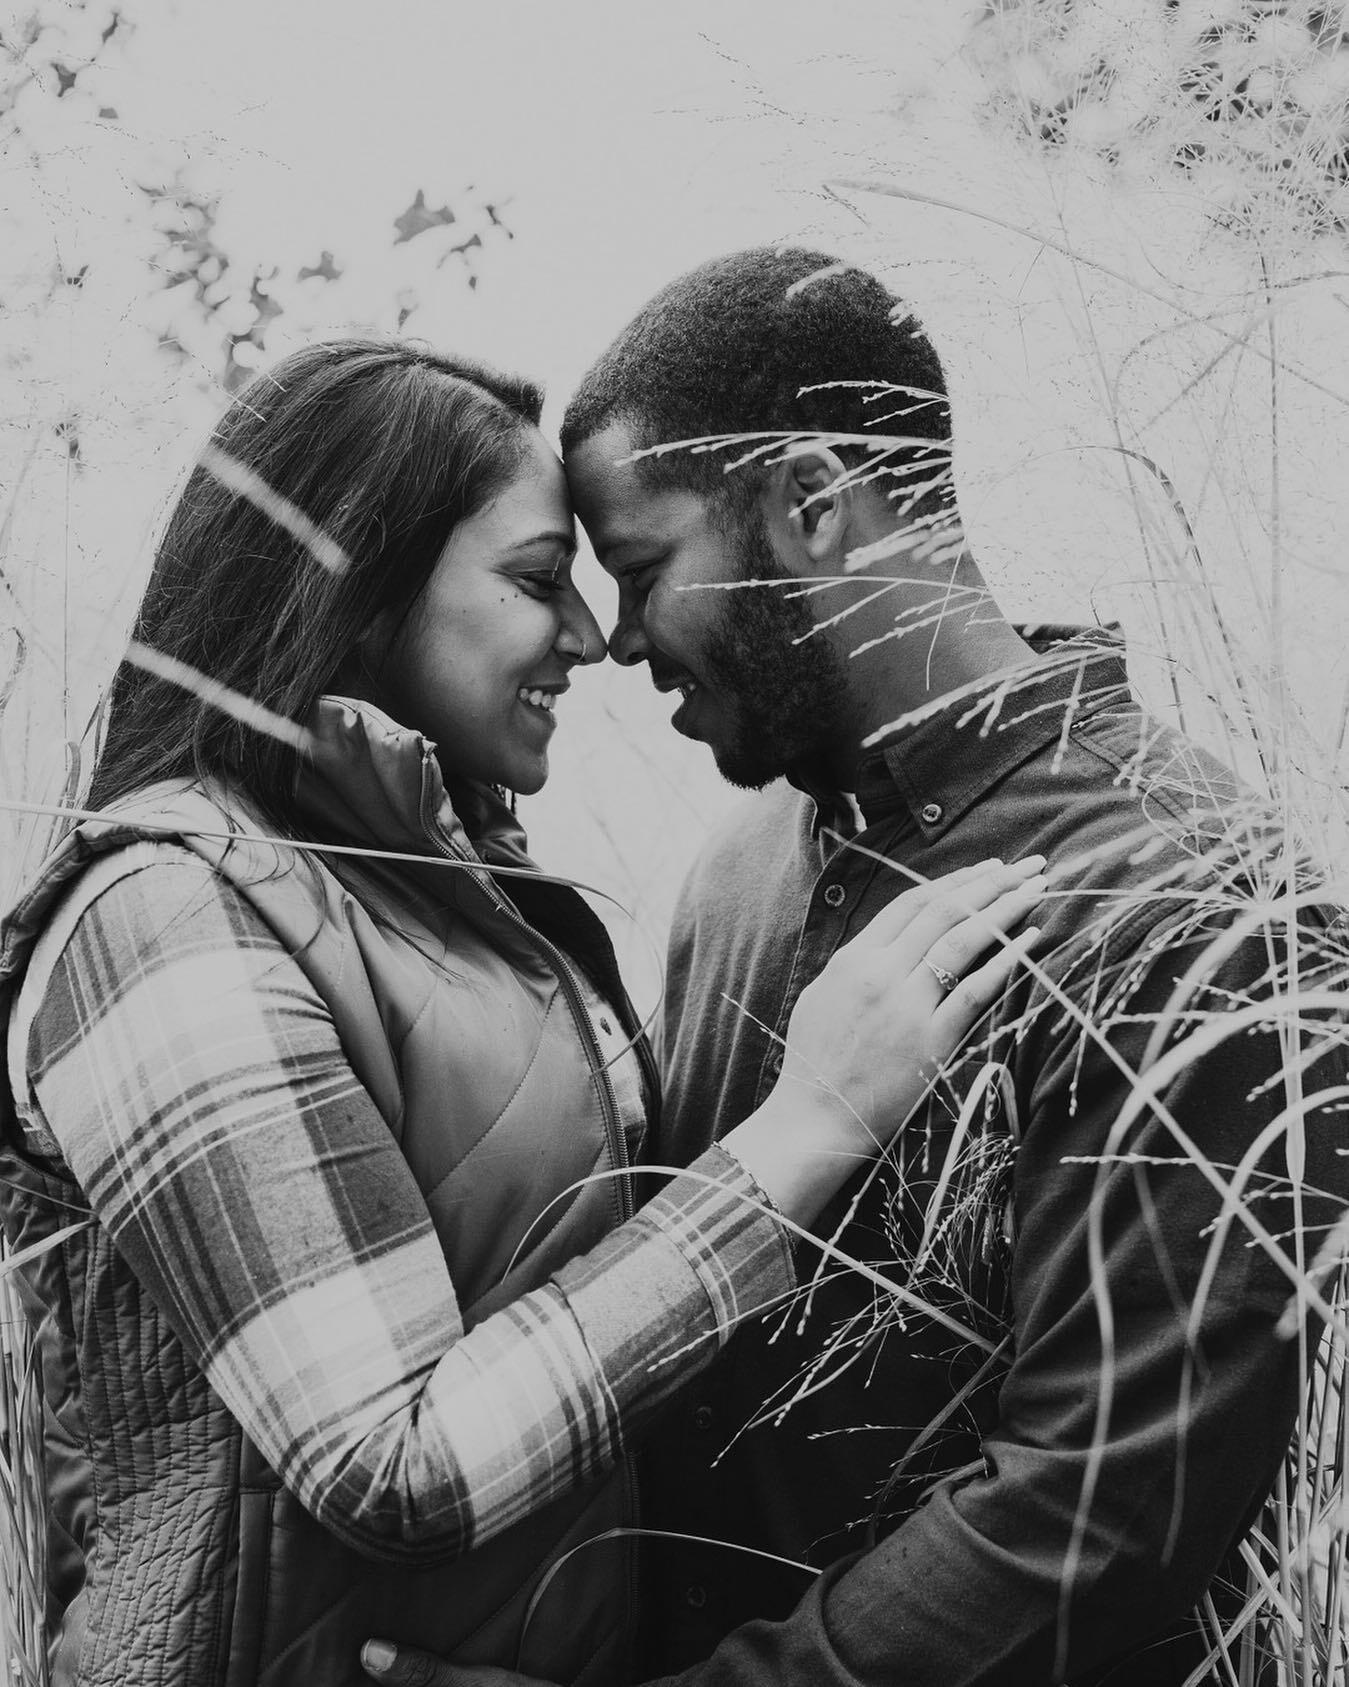 black and white photo of diverse couple nose to nose in a field of tall grass in the winter